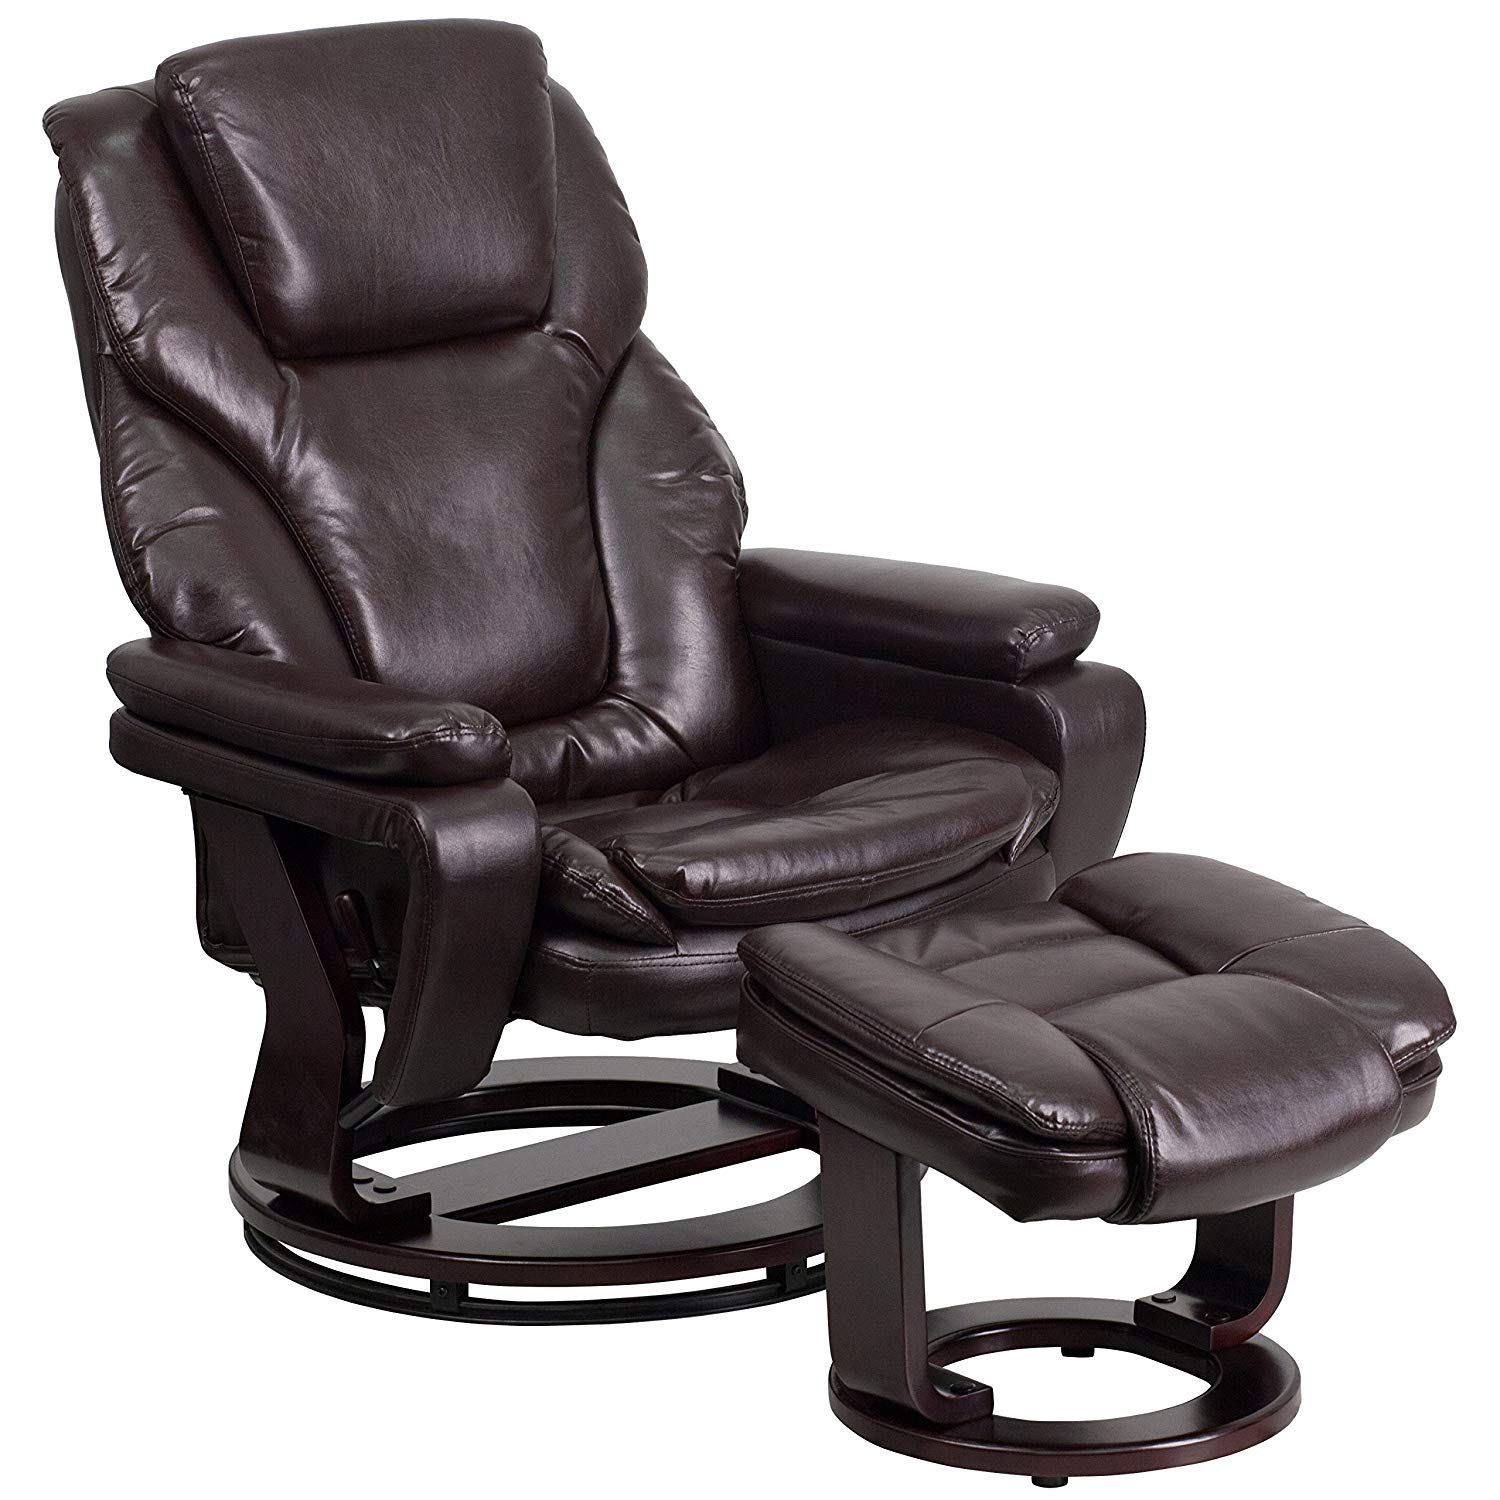 MFO Contemporary Brown Leather Recliner and Ottoman with